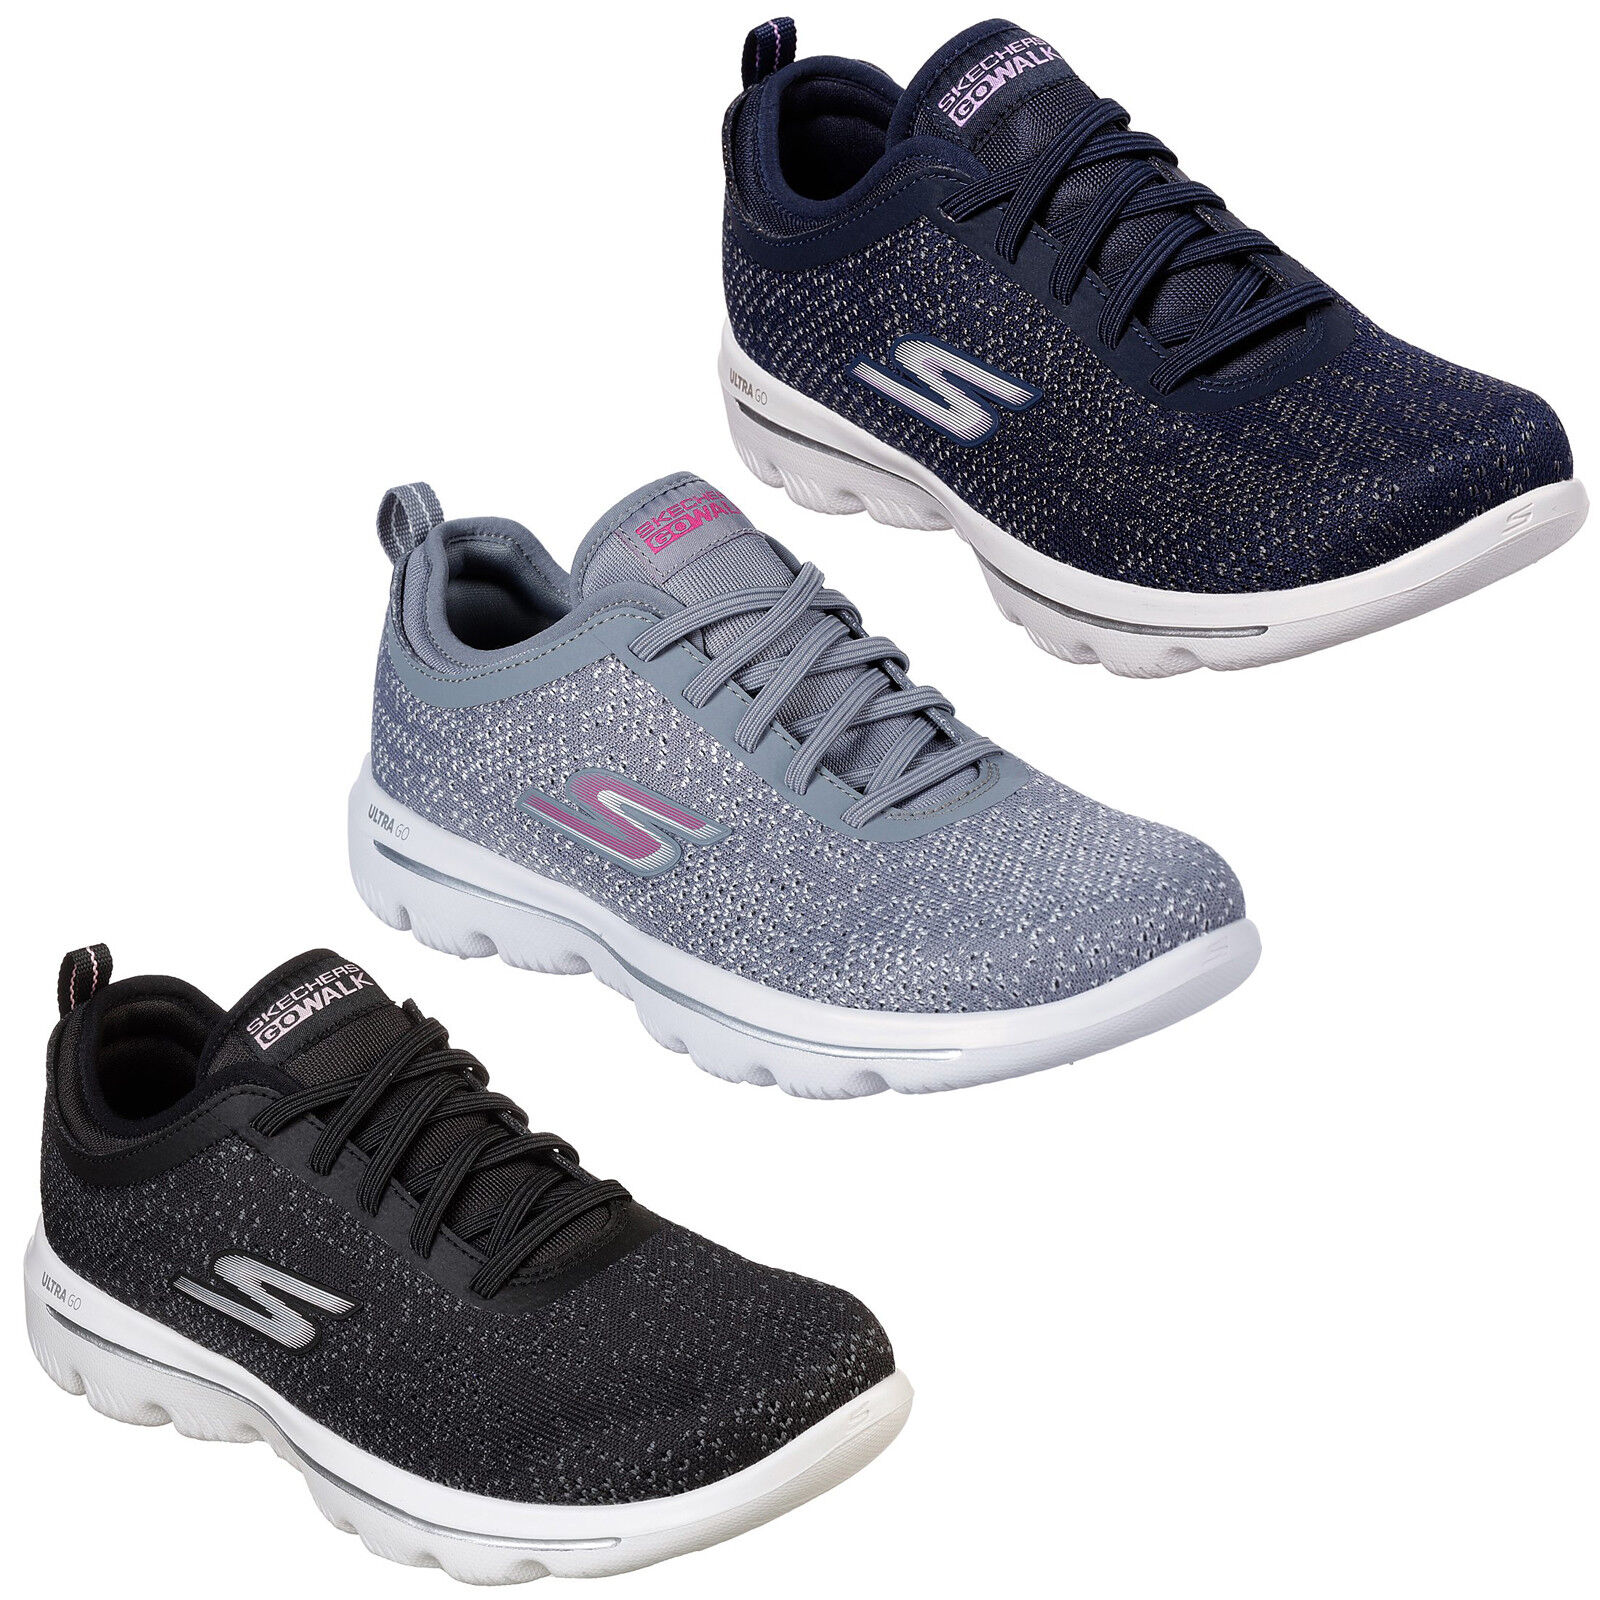 c3e430953 Details about Skechers GoWalk Evolution Ultra - Mirable Trainers Womens  Lightweight Shoe 15736